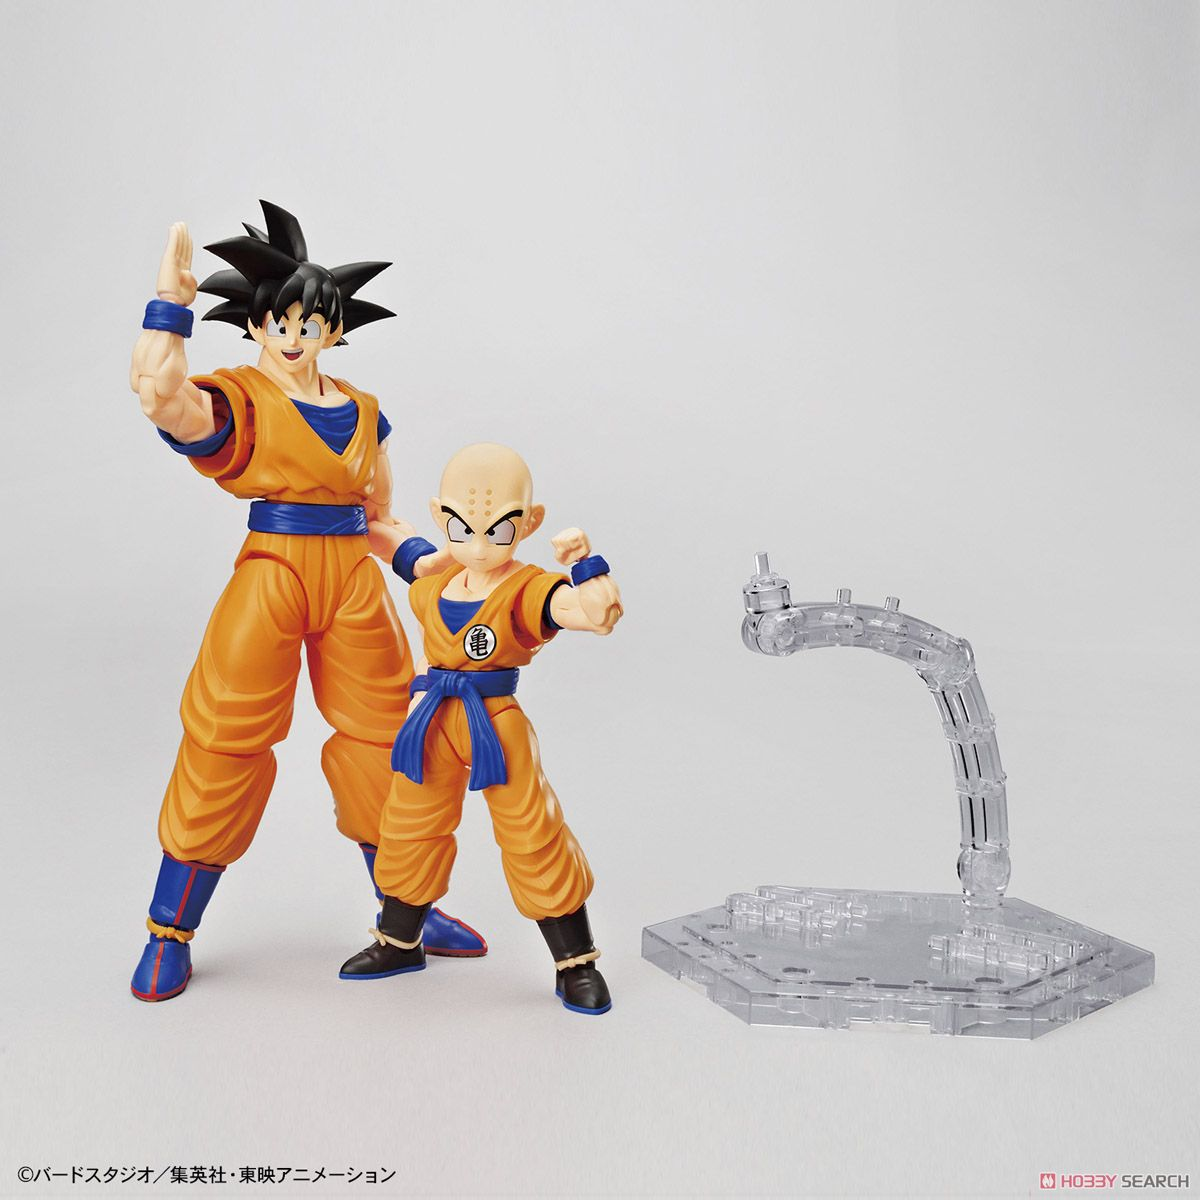 Figure-rise Standard Son Goku & Klilyn DX Set (Plastic model) Item picture2